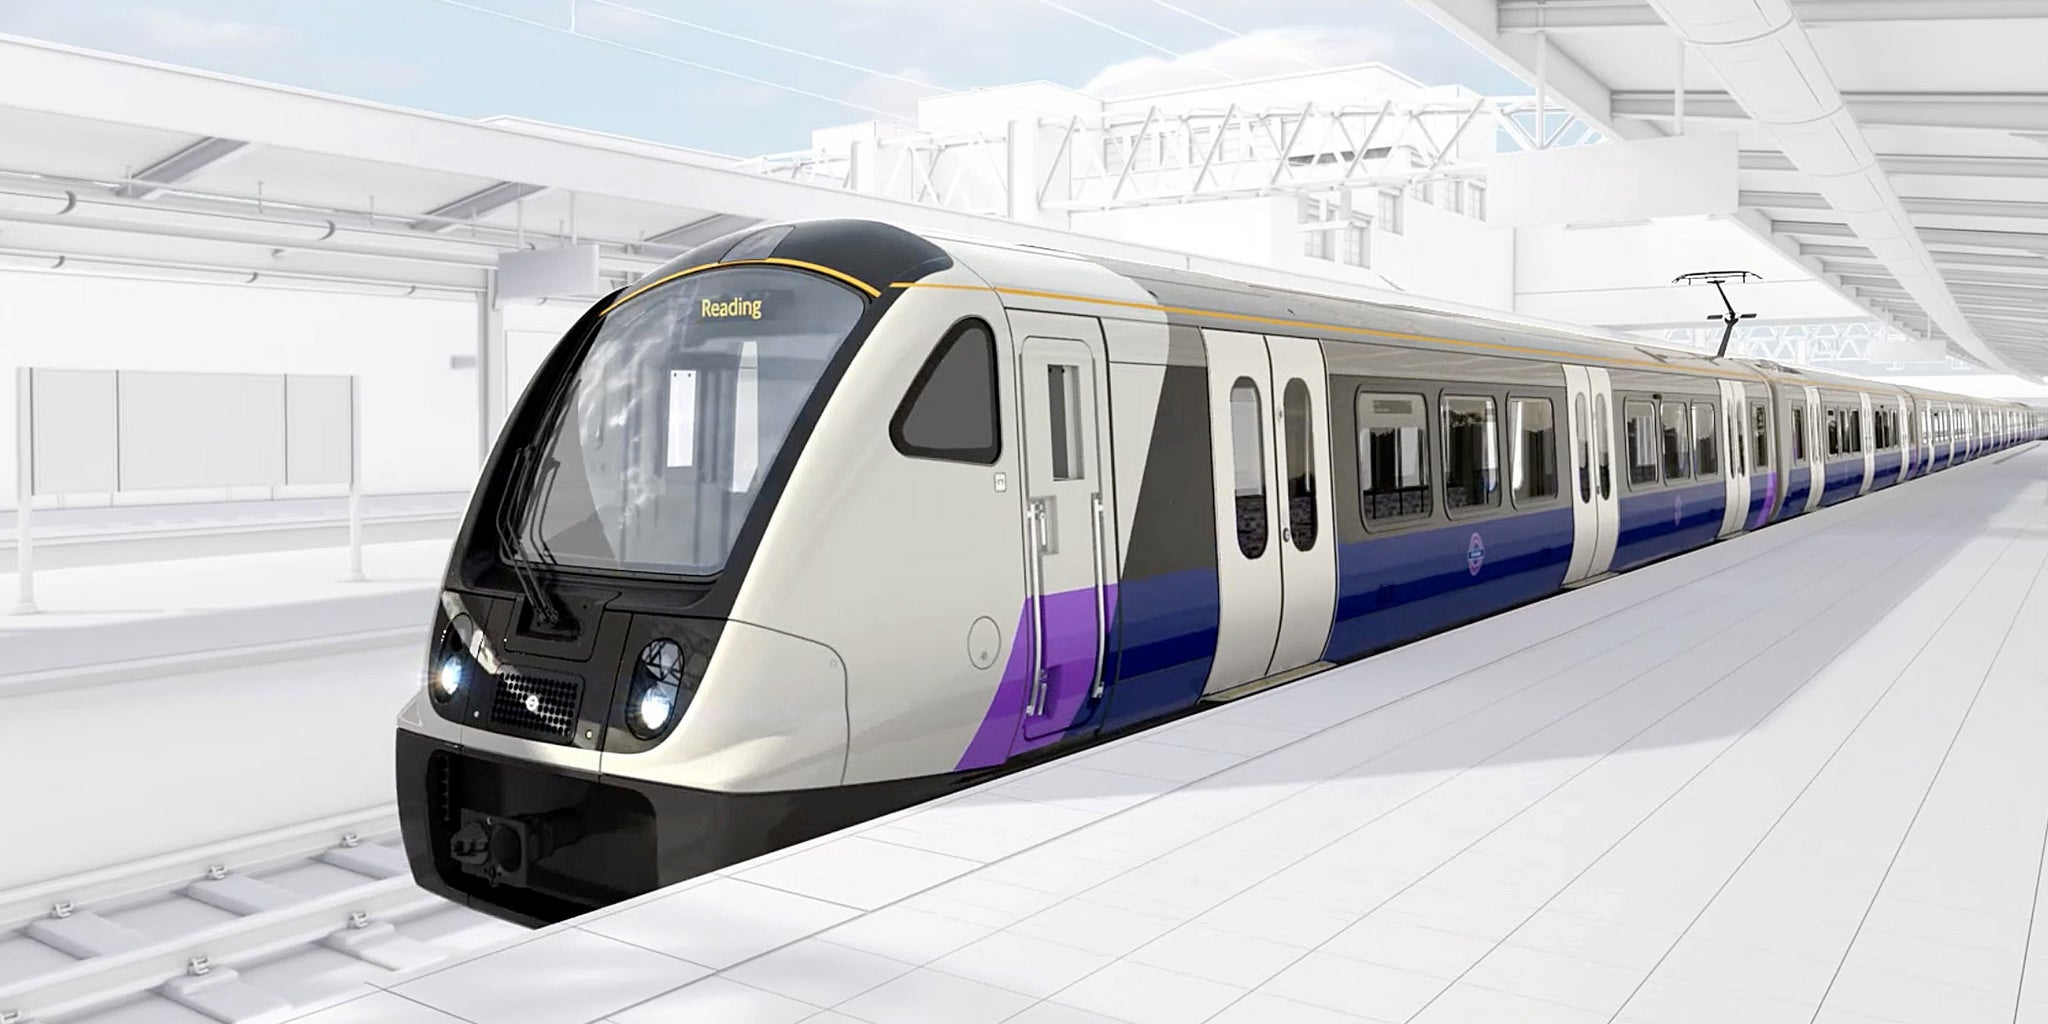 London's Next-Gen Commuter Trains Will Feature 4G, Wi-Fi and AC as Standard